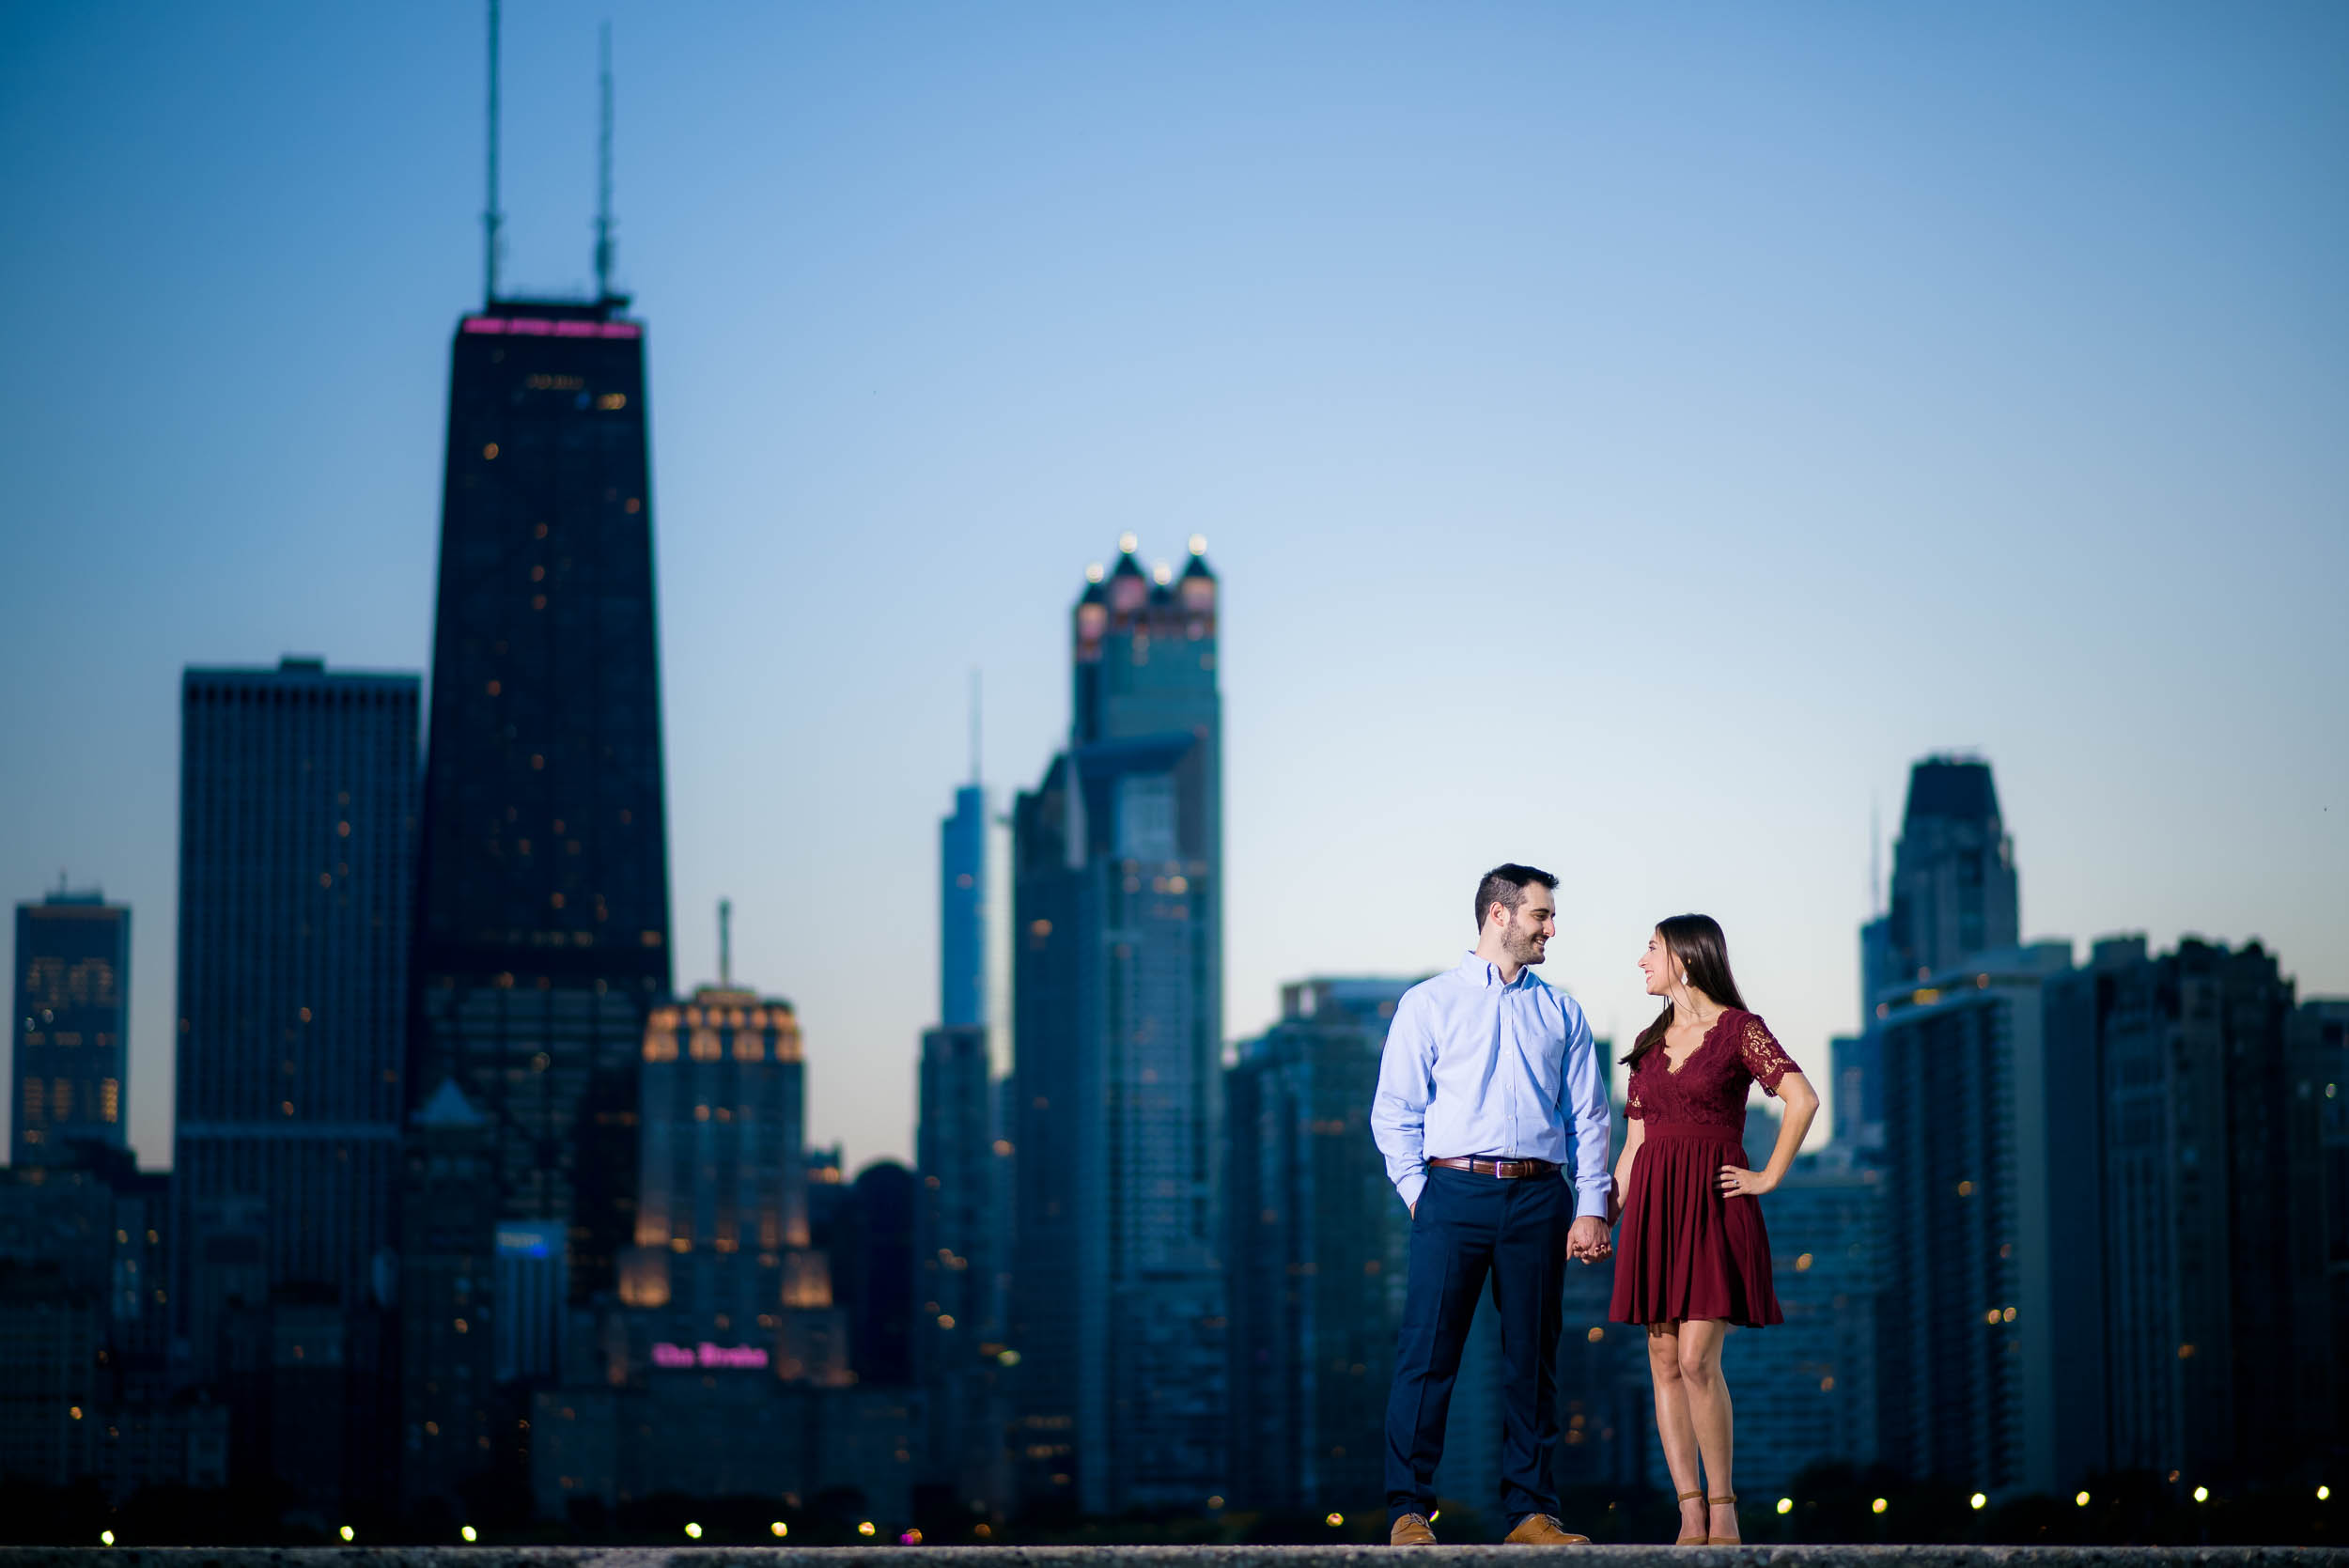 Lincoln Park Chicago engagement session captured by J. Brown Photography. See more engagement photo ideas at jbrownphotography.com!